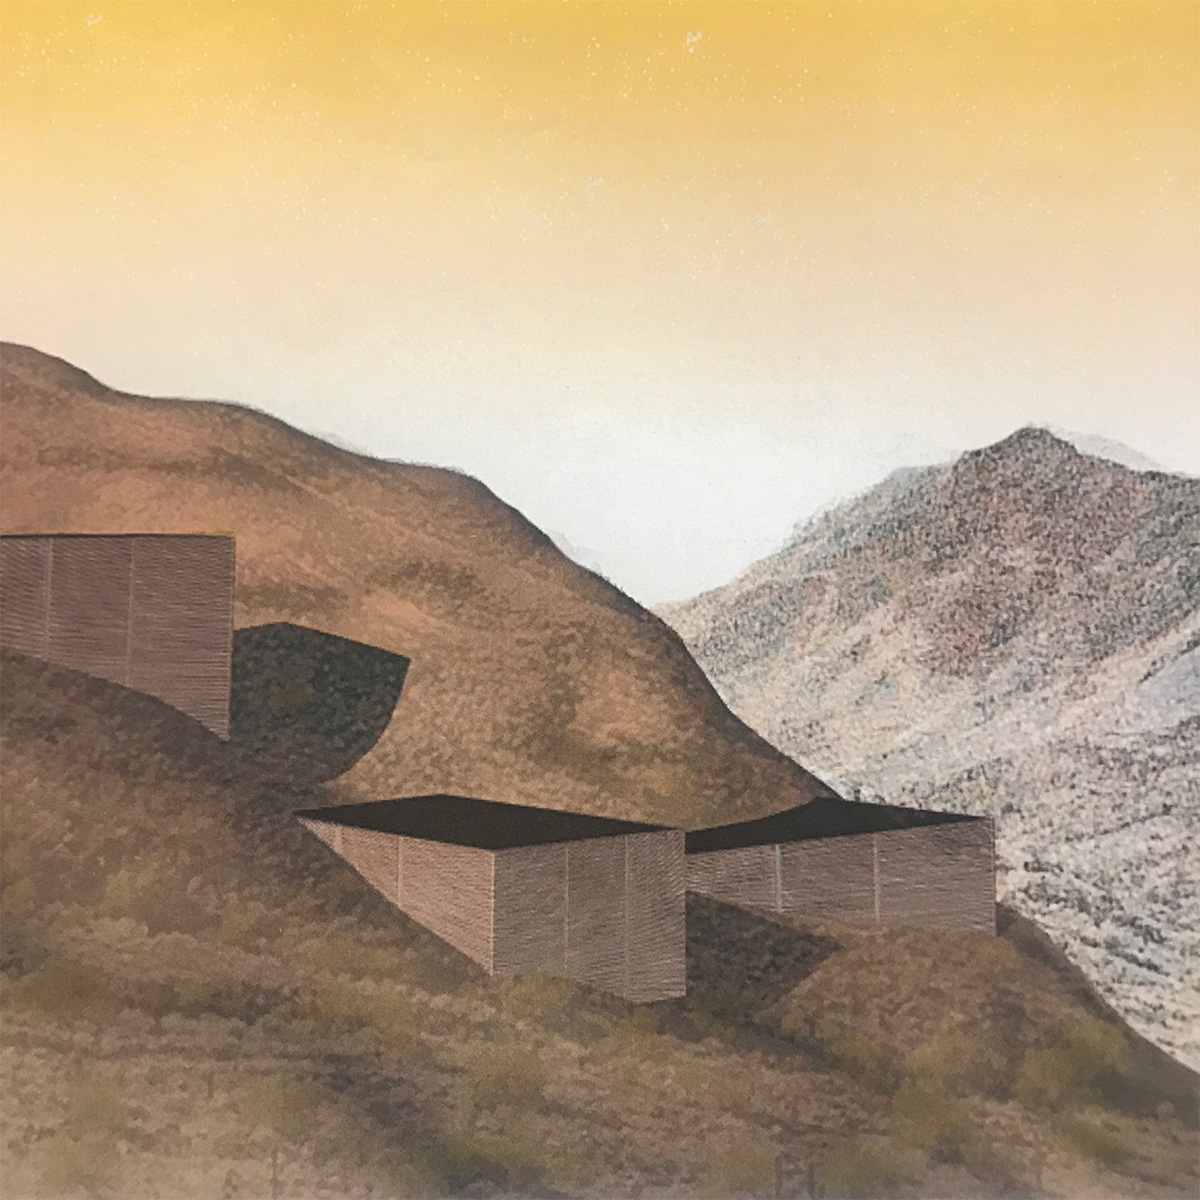 Concept collage studying earthen masses that merge with Phoenix's South Mountain preserve by student Brandon Powell